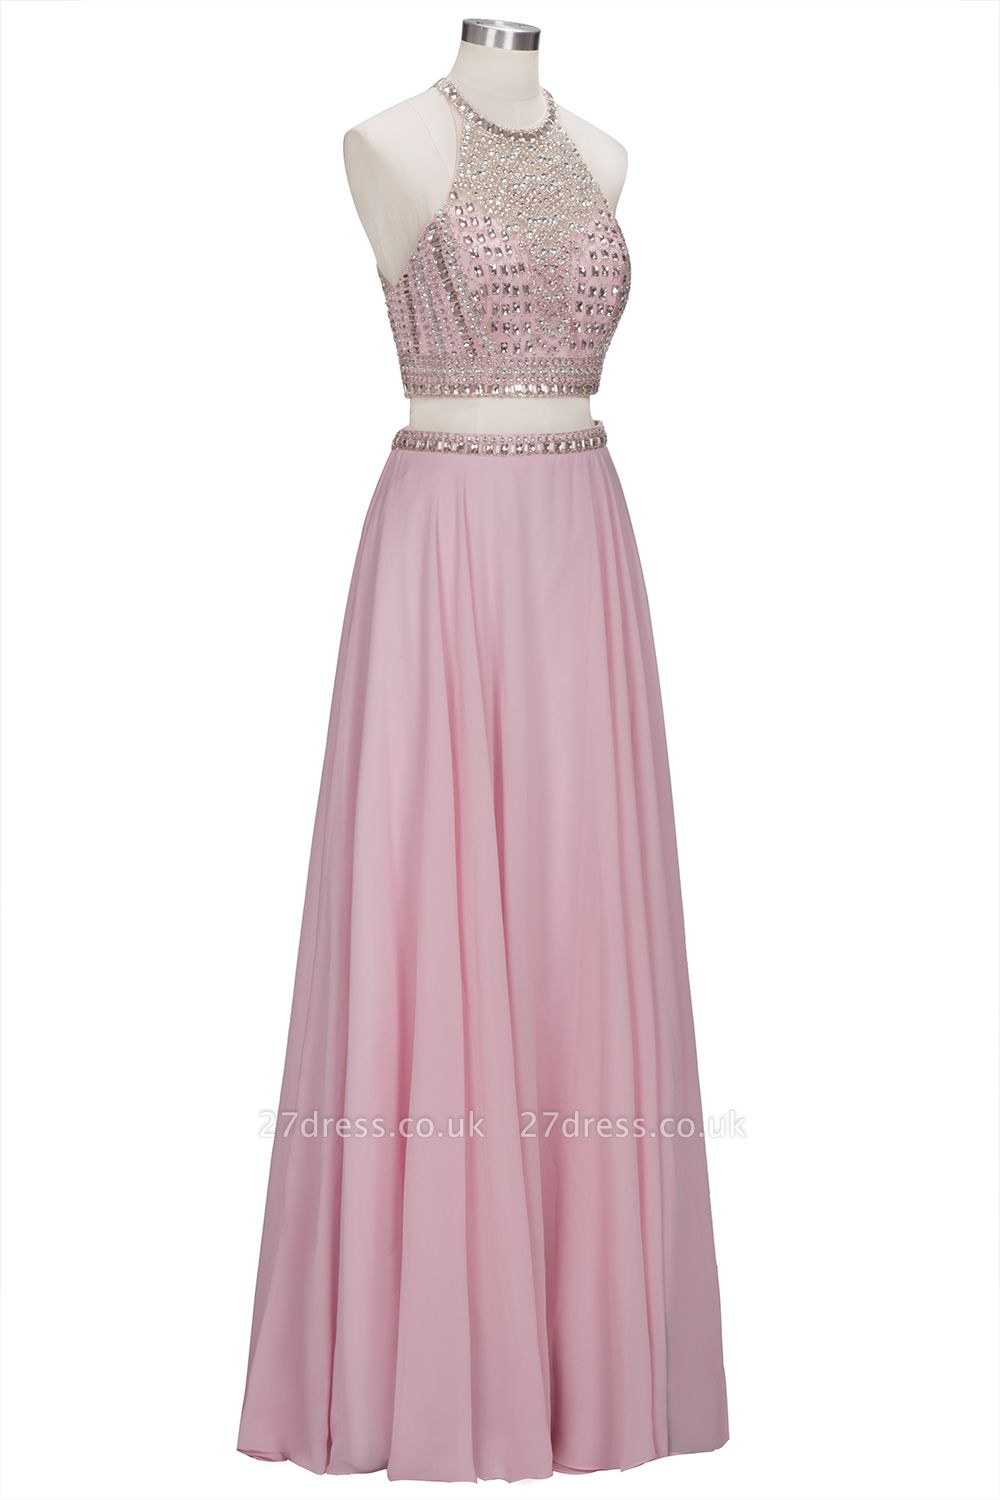 Pink Crystals Floor-length A-line Two-piece Delicate Evening Dress UK